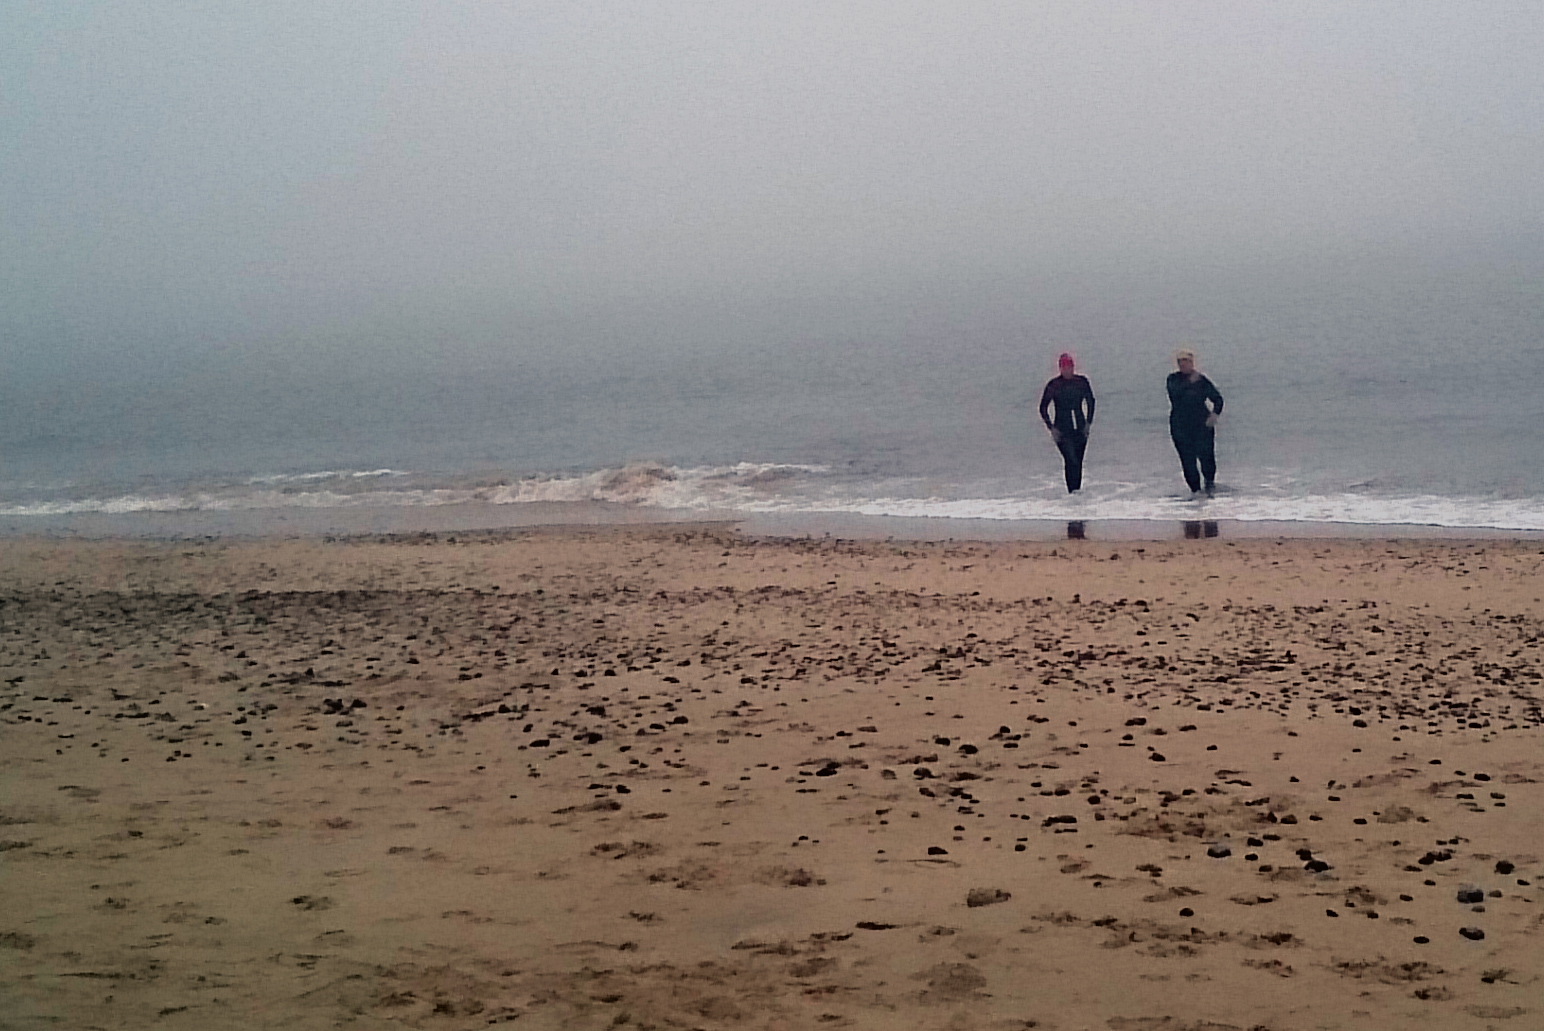 Two wetsuited swimmers on beach in fog